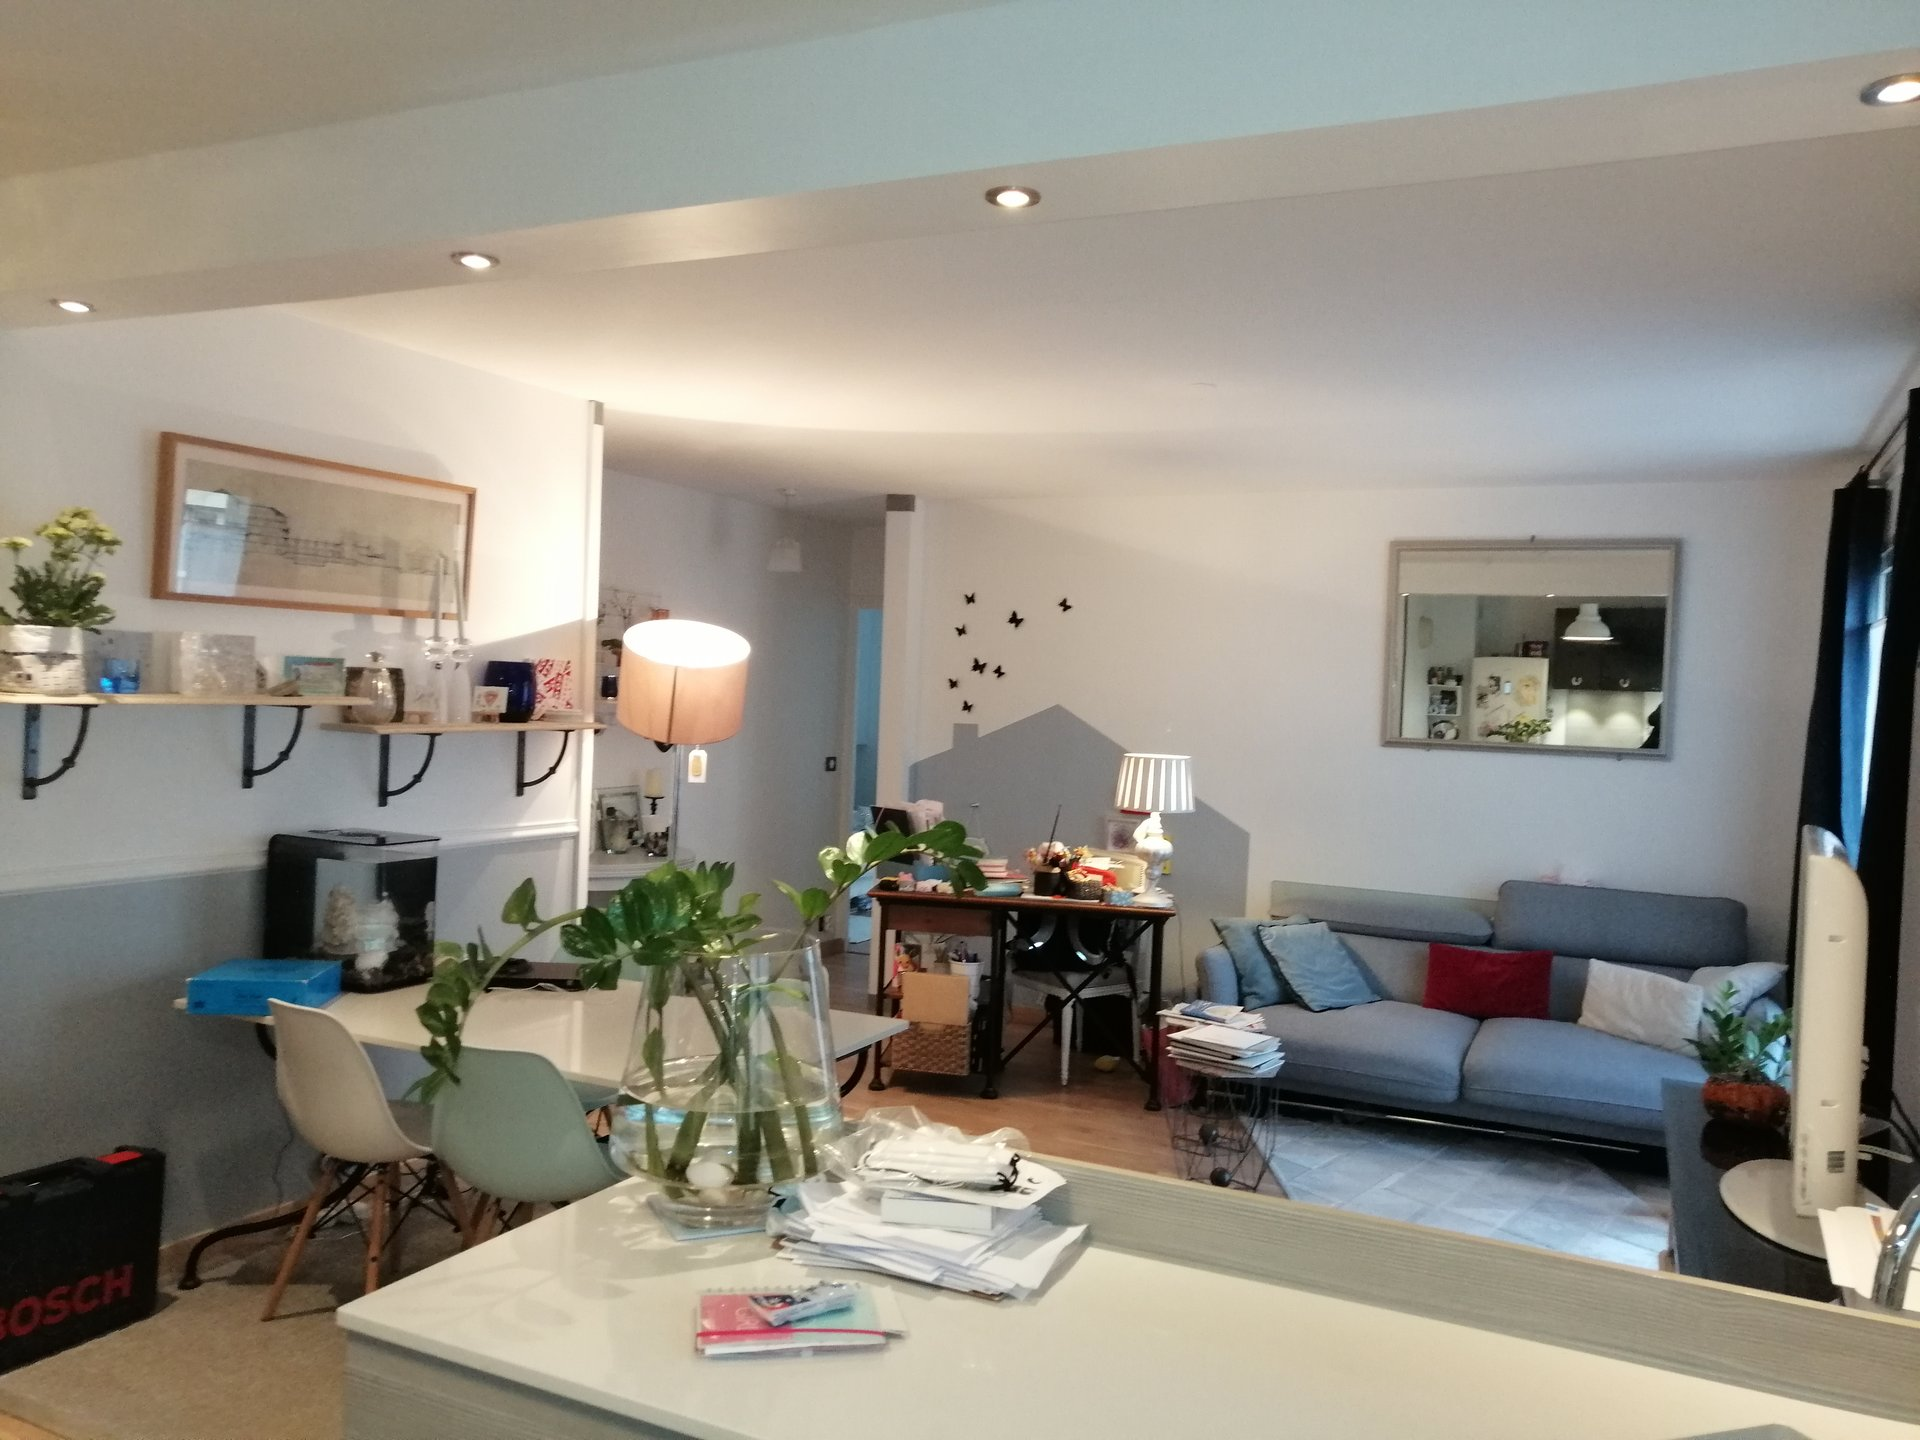 Appartement - Chantilly Bois-Saint-Denis - 292 000 € FAI